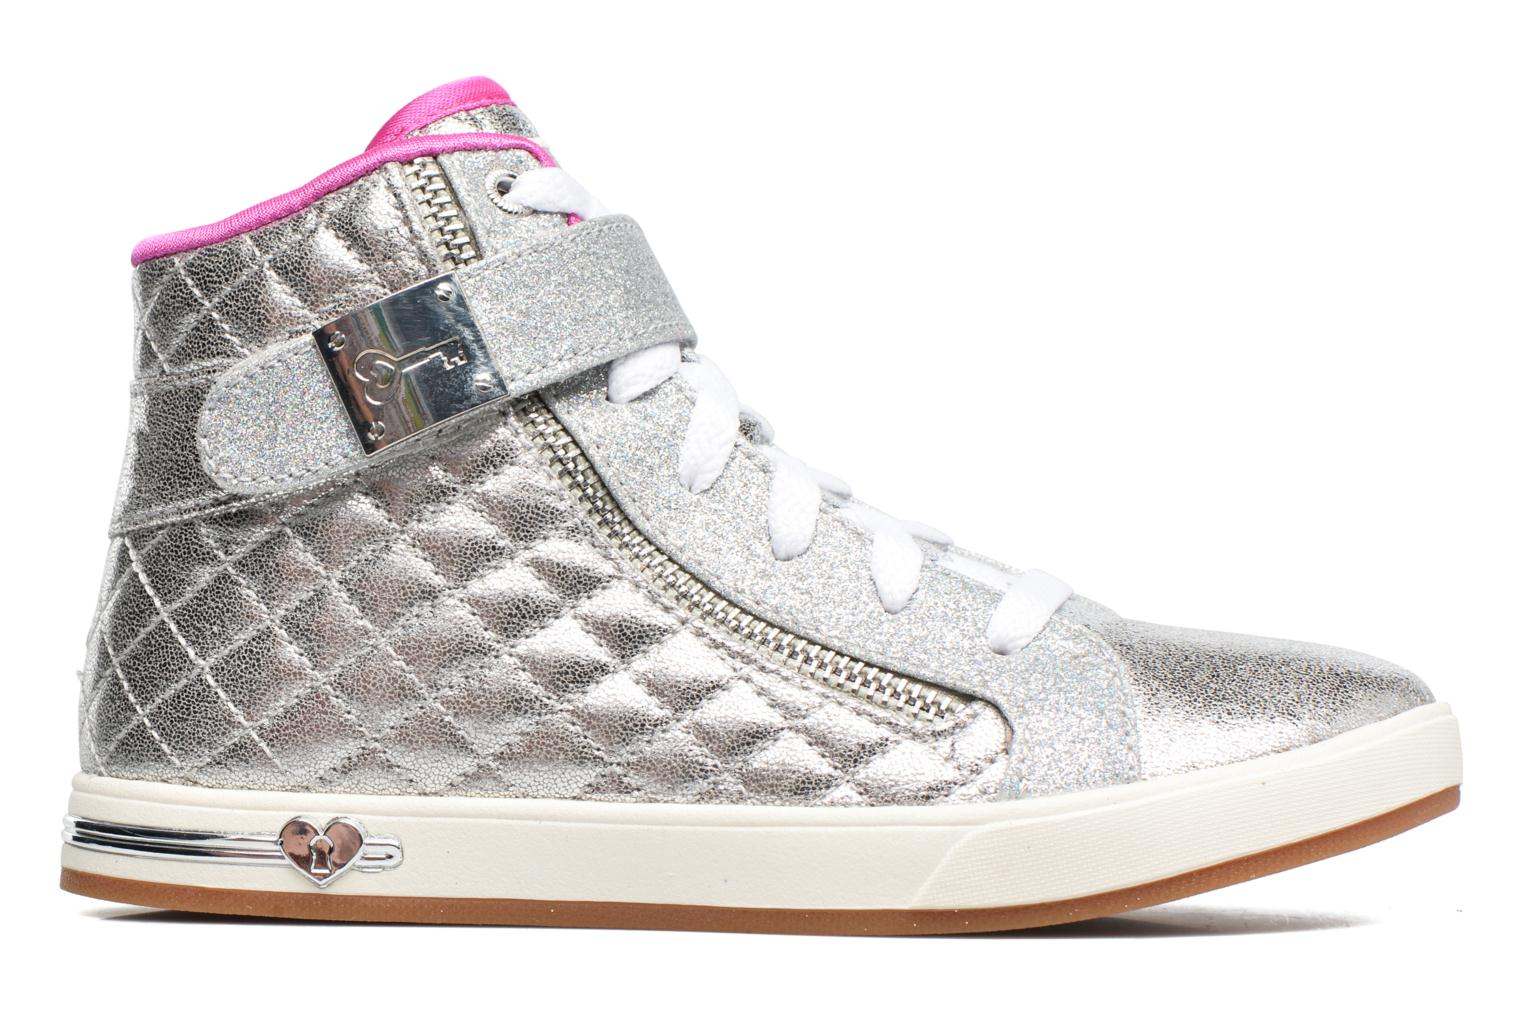 Quilted Crush Skechers Skechers Quilted Shoutouts Crush Argent Shoutouts 6gzwZT6q